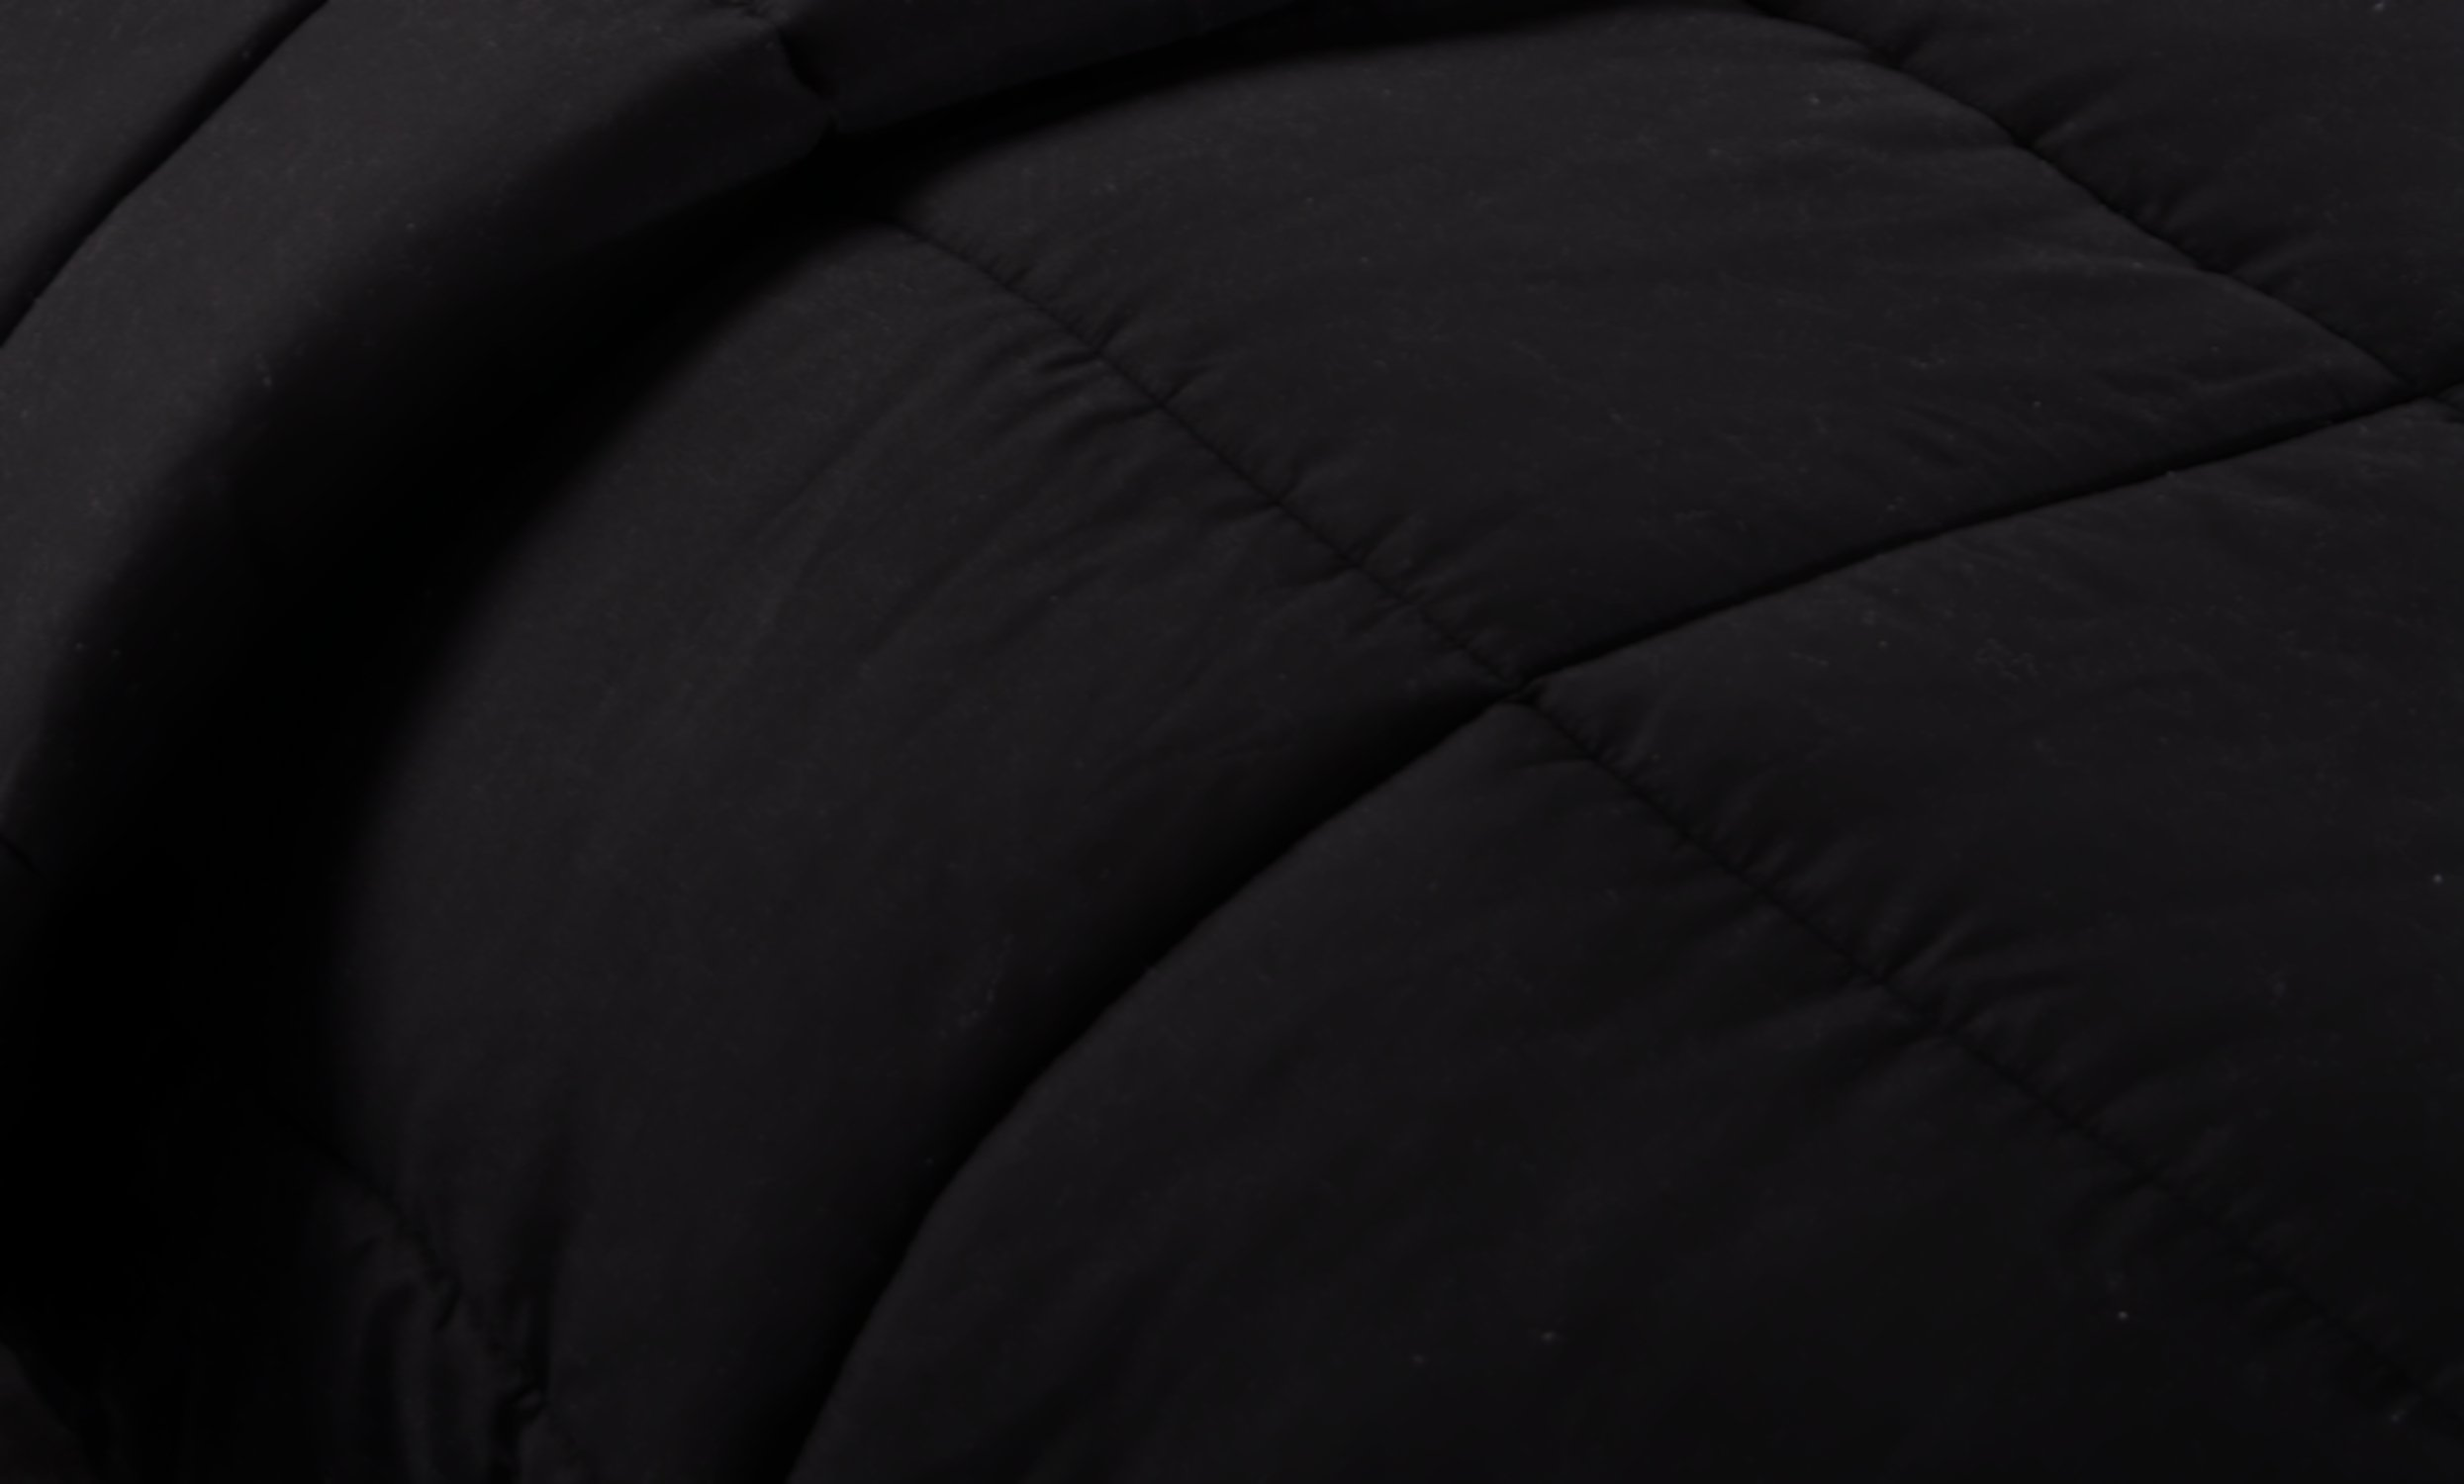 Ghooss All Season Black Bedding Down Alternative Comforter -Hotel Quality Luxury Quilt with Corner Tabs-Hypoallergenic-Super Microfiber Fill -Machine Washable-Queen by Ghooss (Image #3)